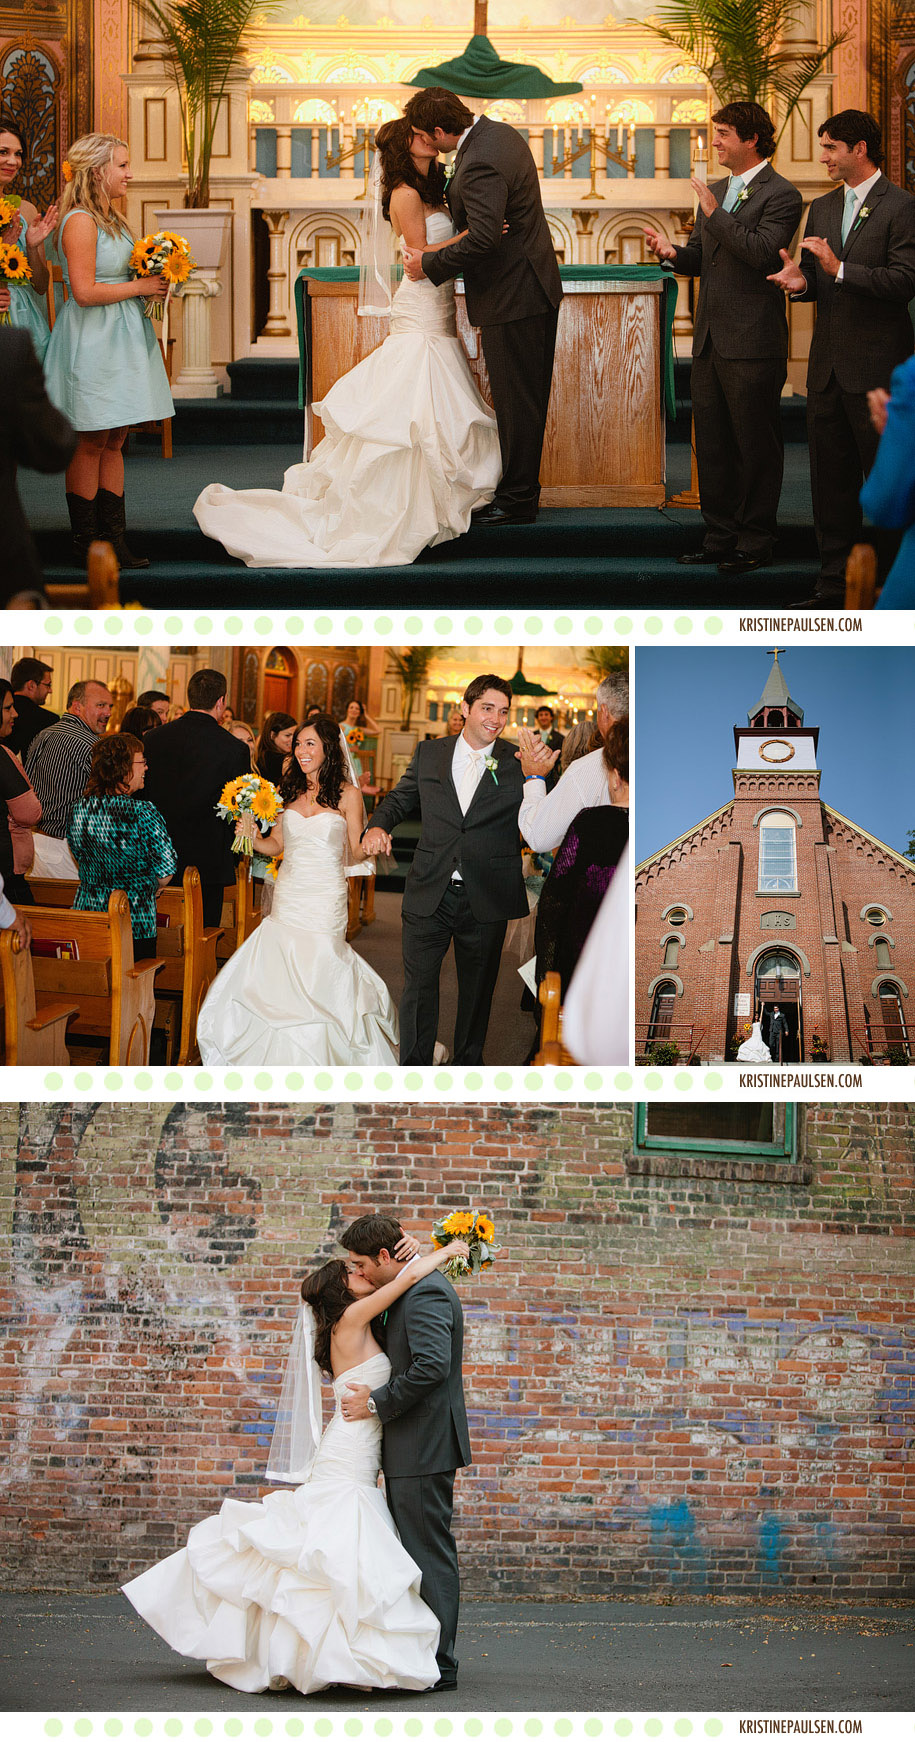 Maureen renehan wedding